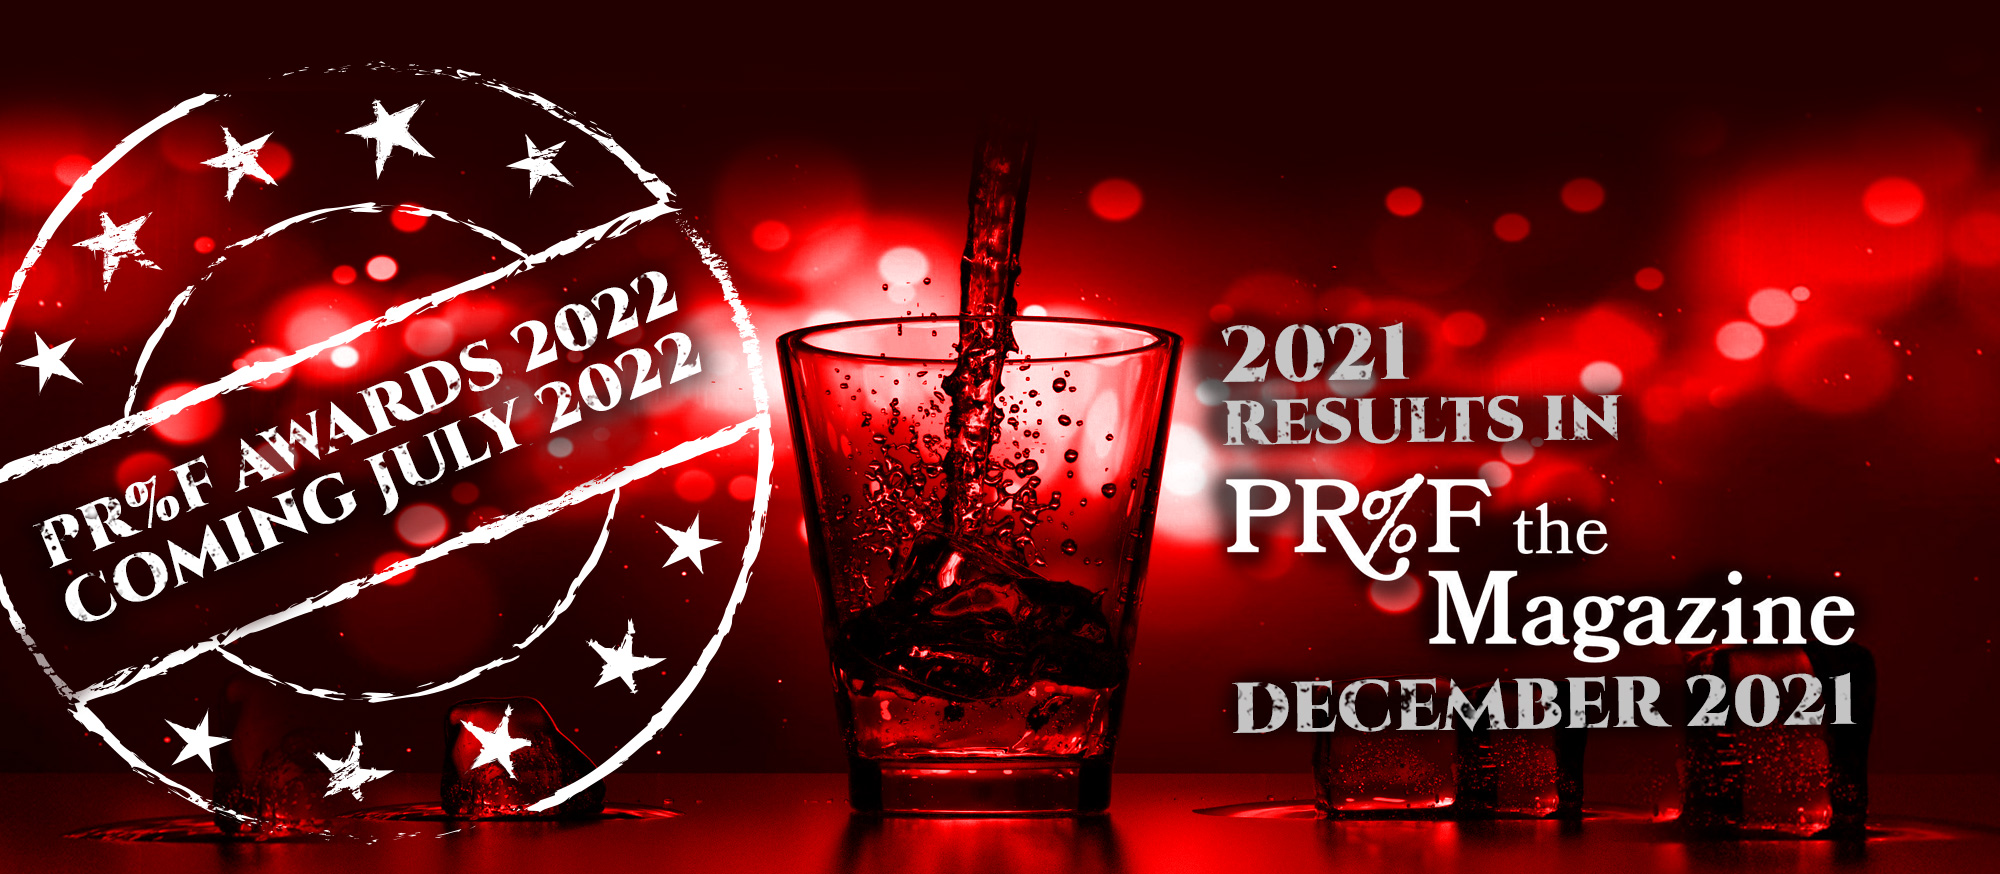 Proof Awards 2022 Coming July 2022 - 2021 Results in PR%F the Magazine December 2021